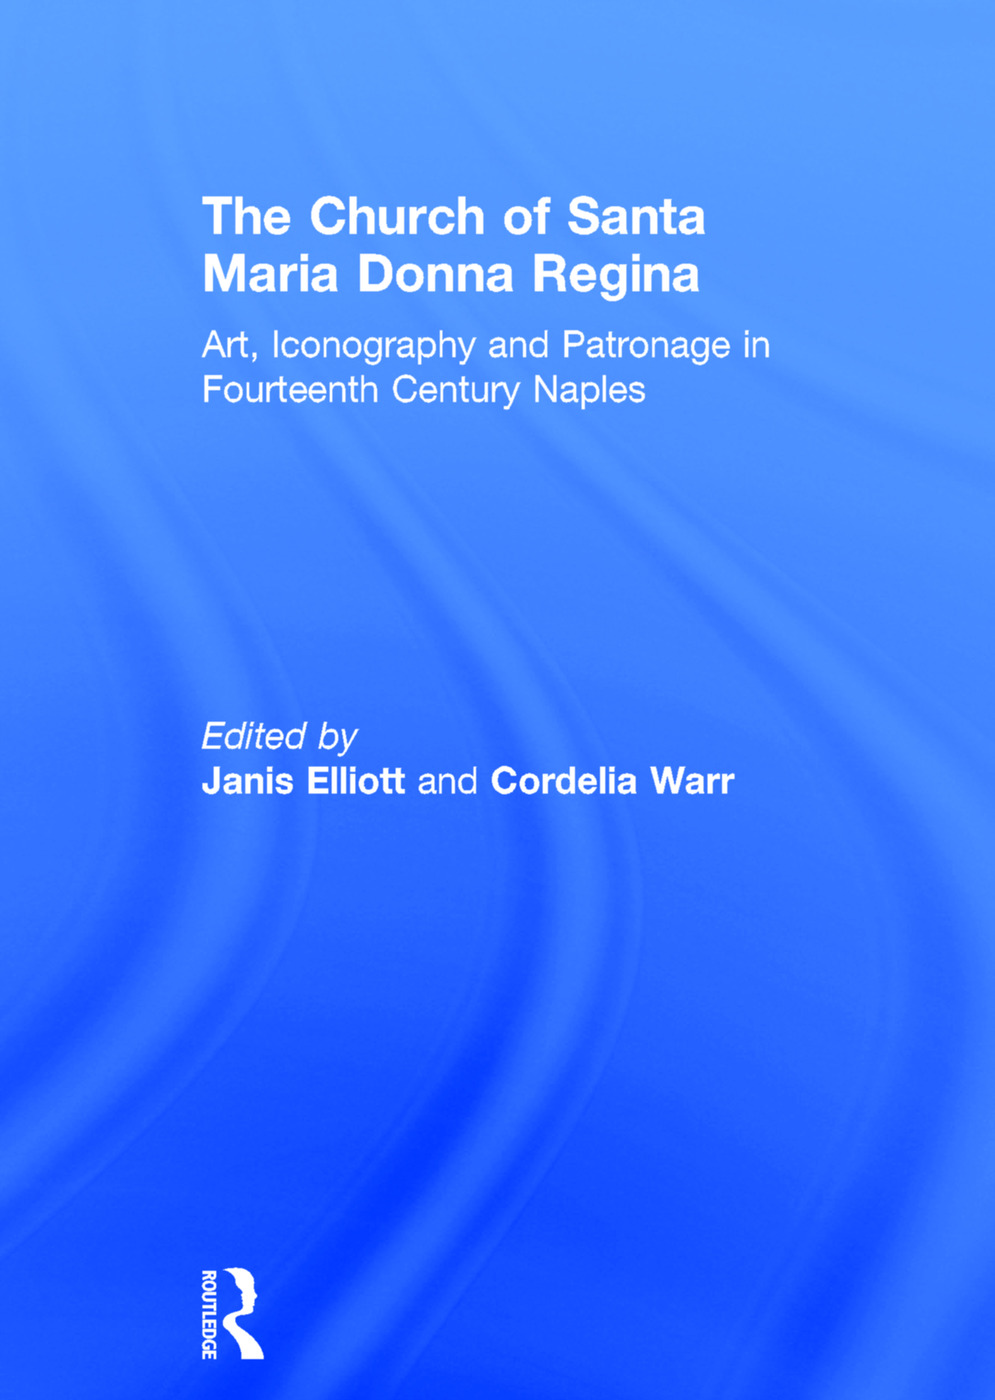 The Church of Santa Maria Donna Regina: Art, Iconography and Patronage in Fourteenth Century Naples, 1st Edition (Hardback) book cover